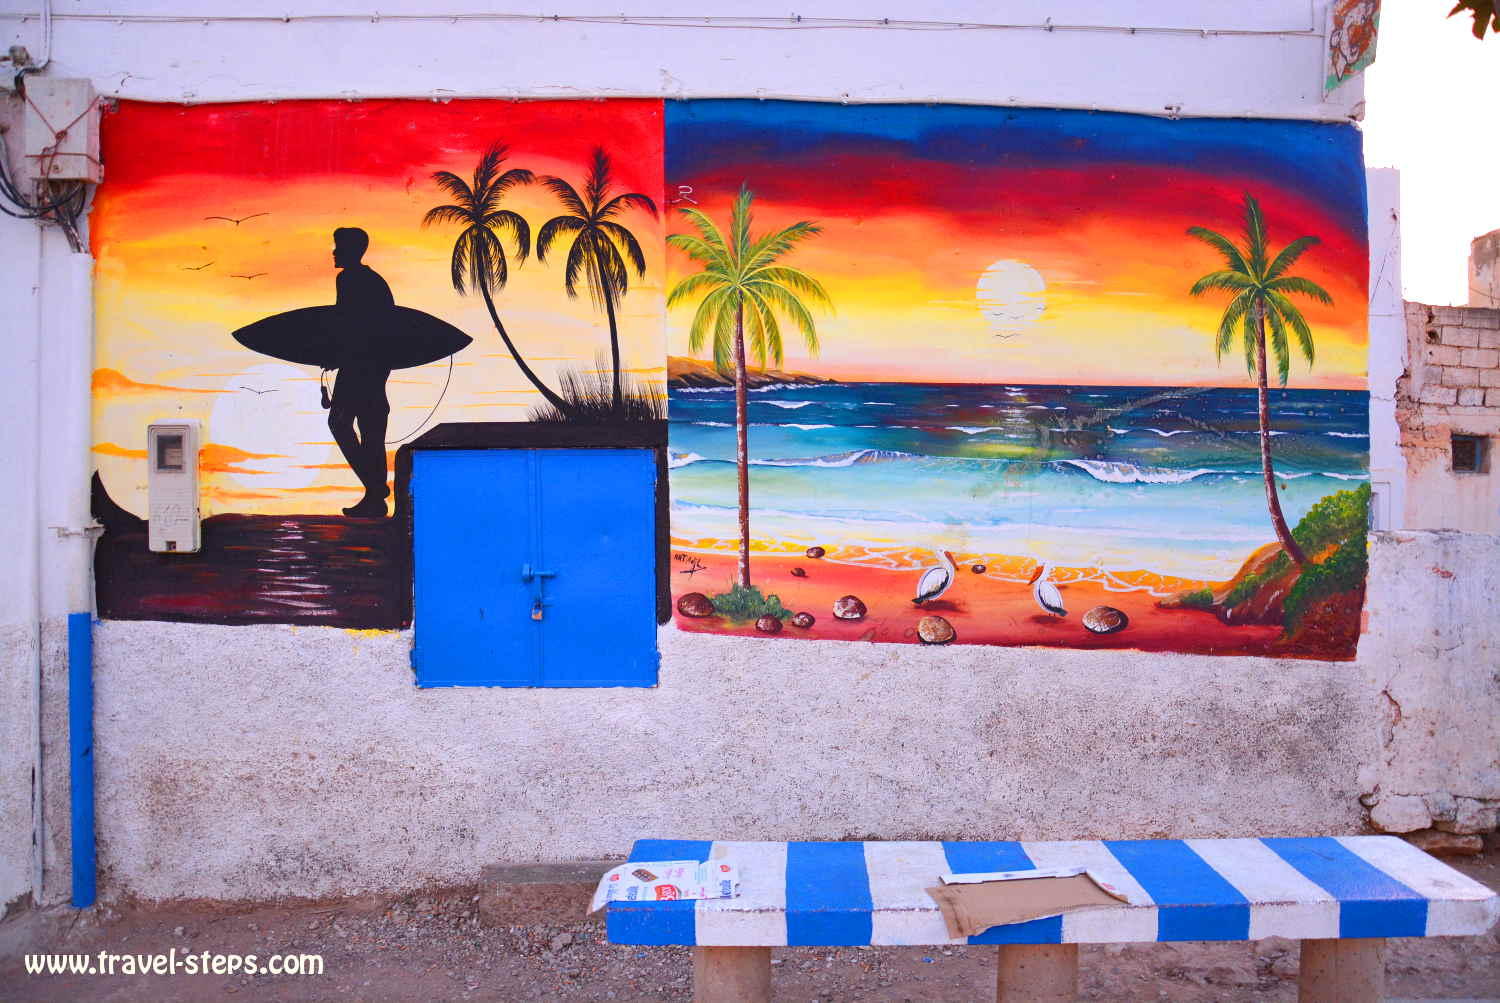 backpacking tips taghazout morocco travel steps street art in taghazout morocco